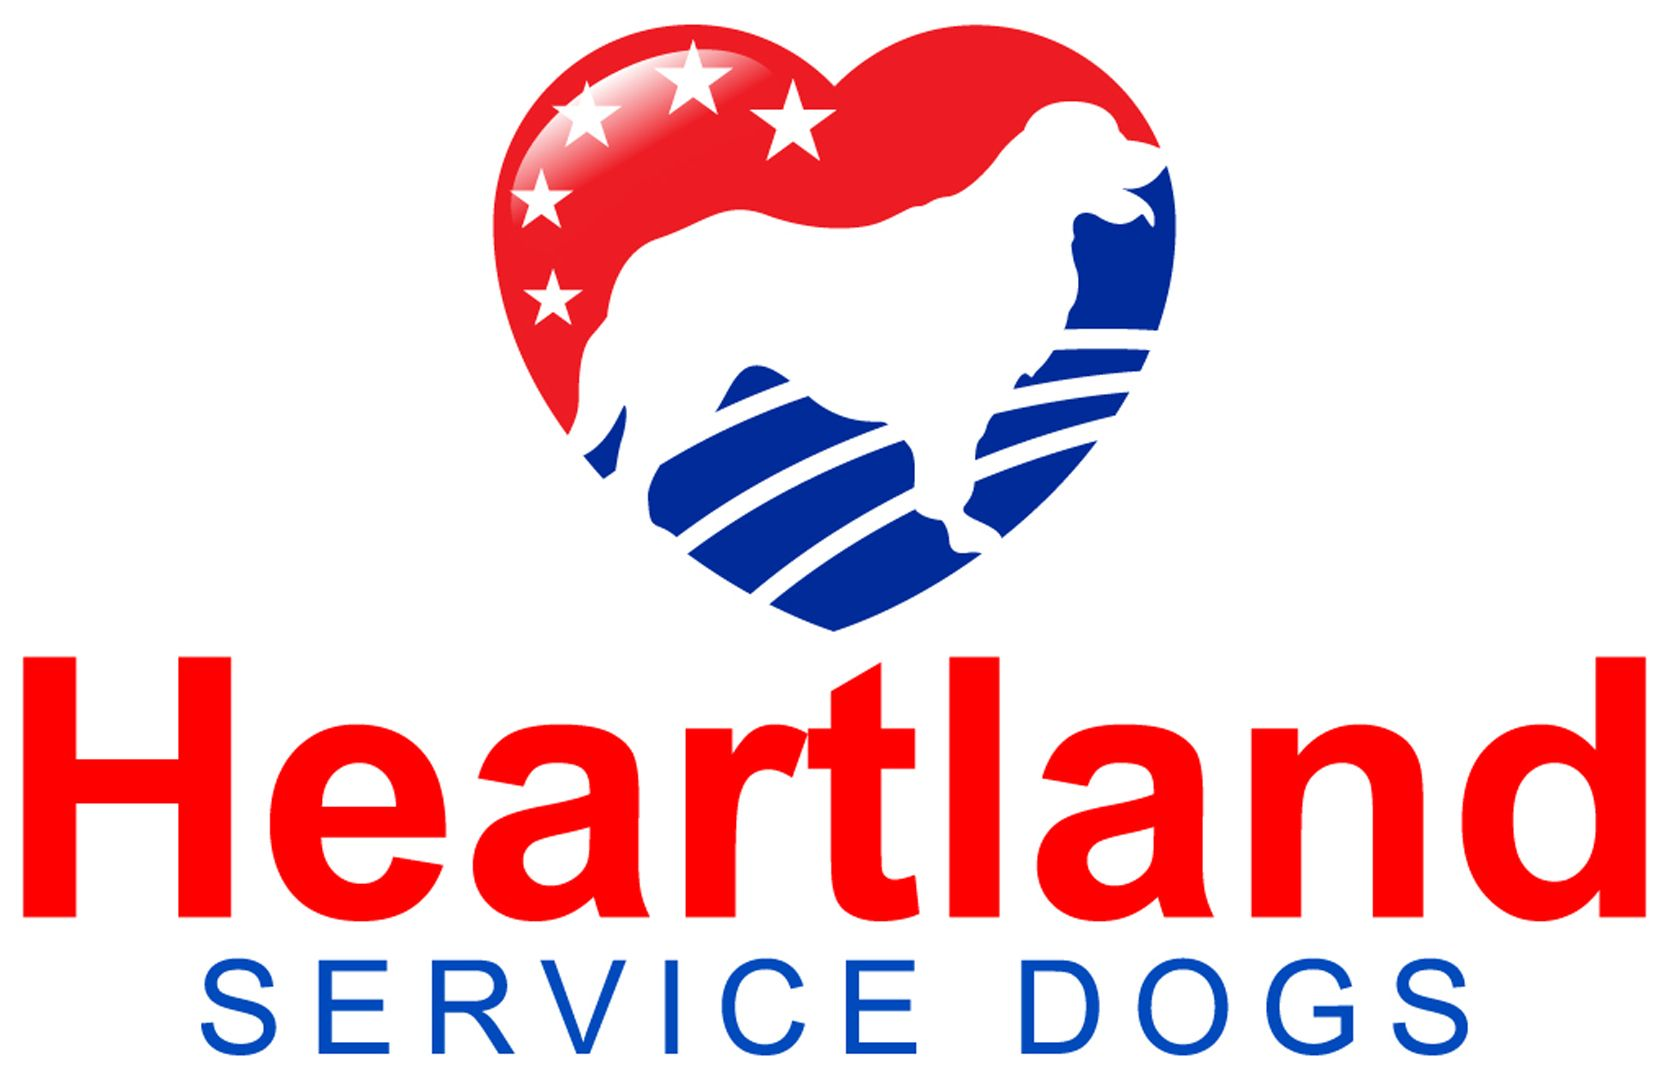 Heartland Service Dogs Providing Hope Inspiration And Independence To Disabled Adults And Children Service Dogs Puppy Love Dogs